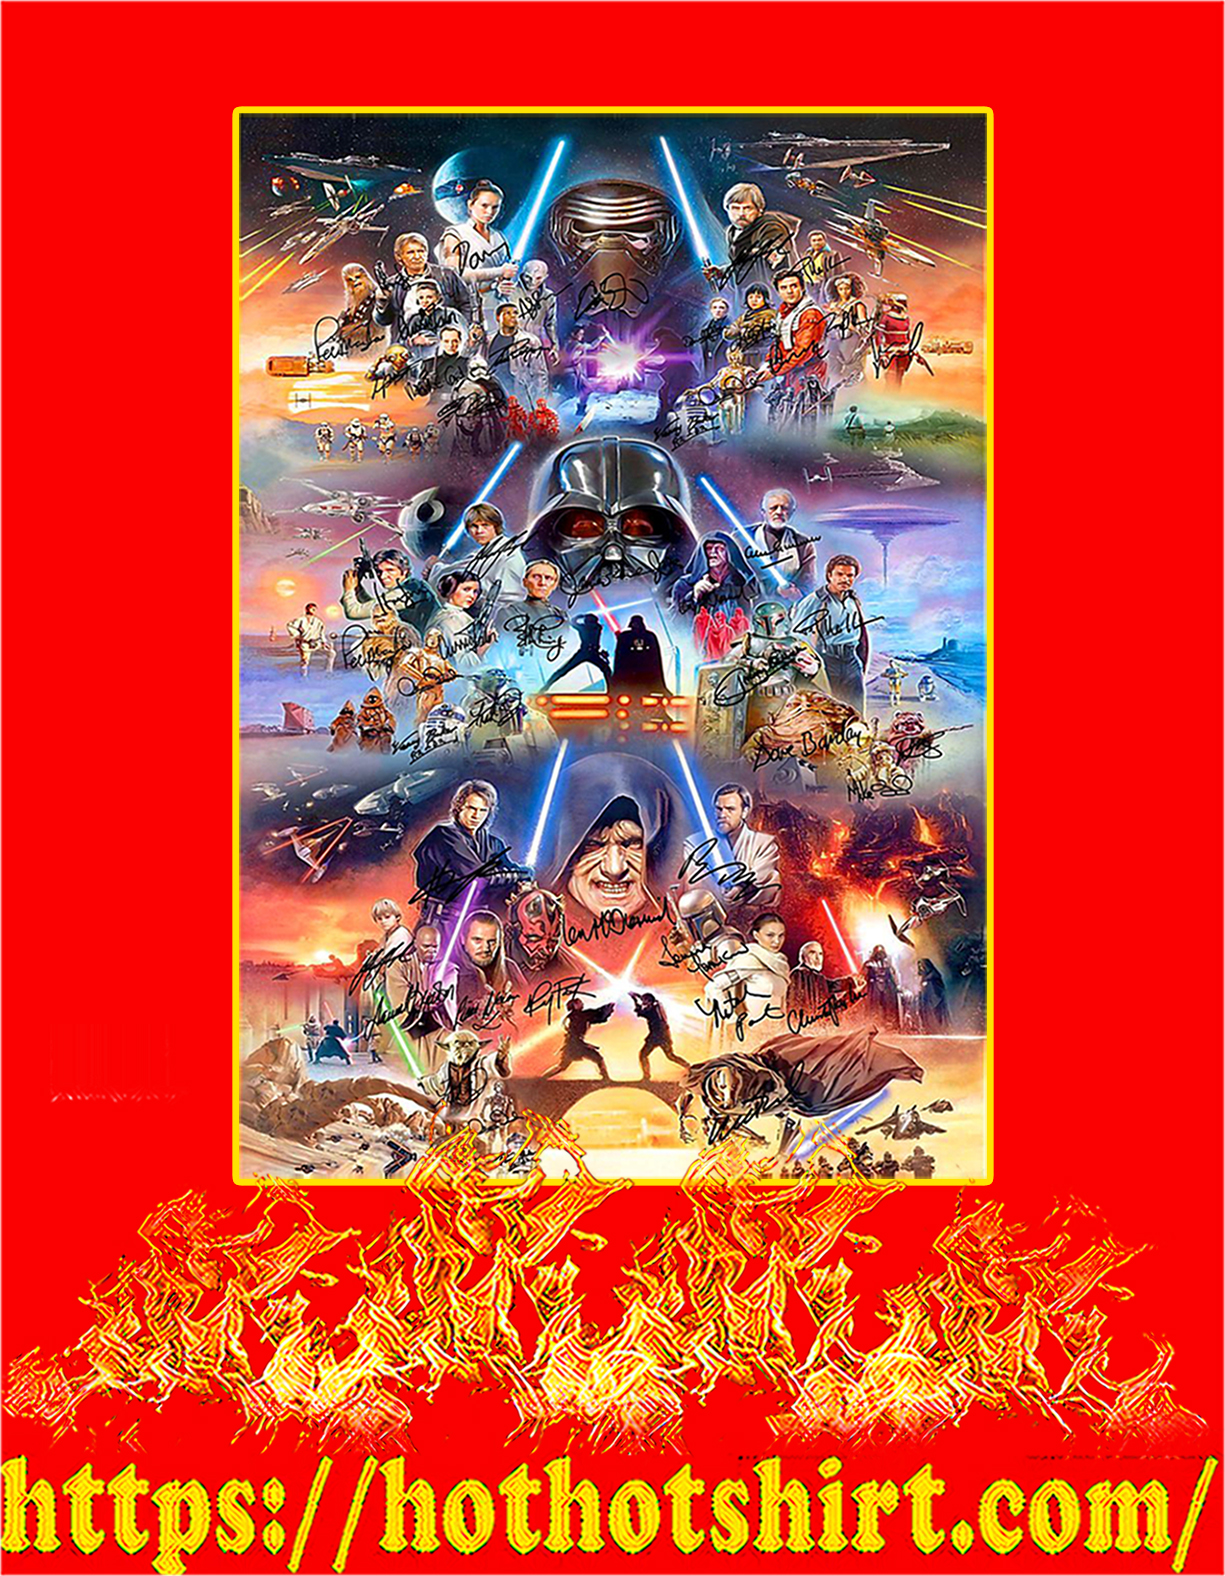 Star Wars Signature Poster - A4